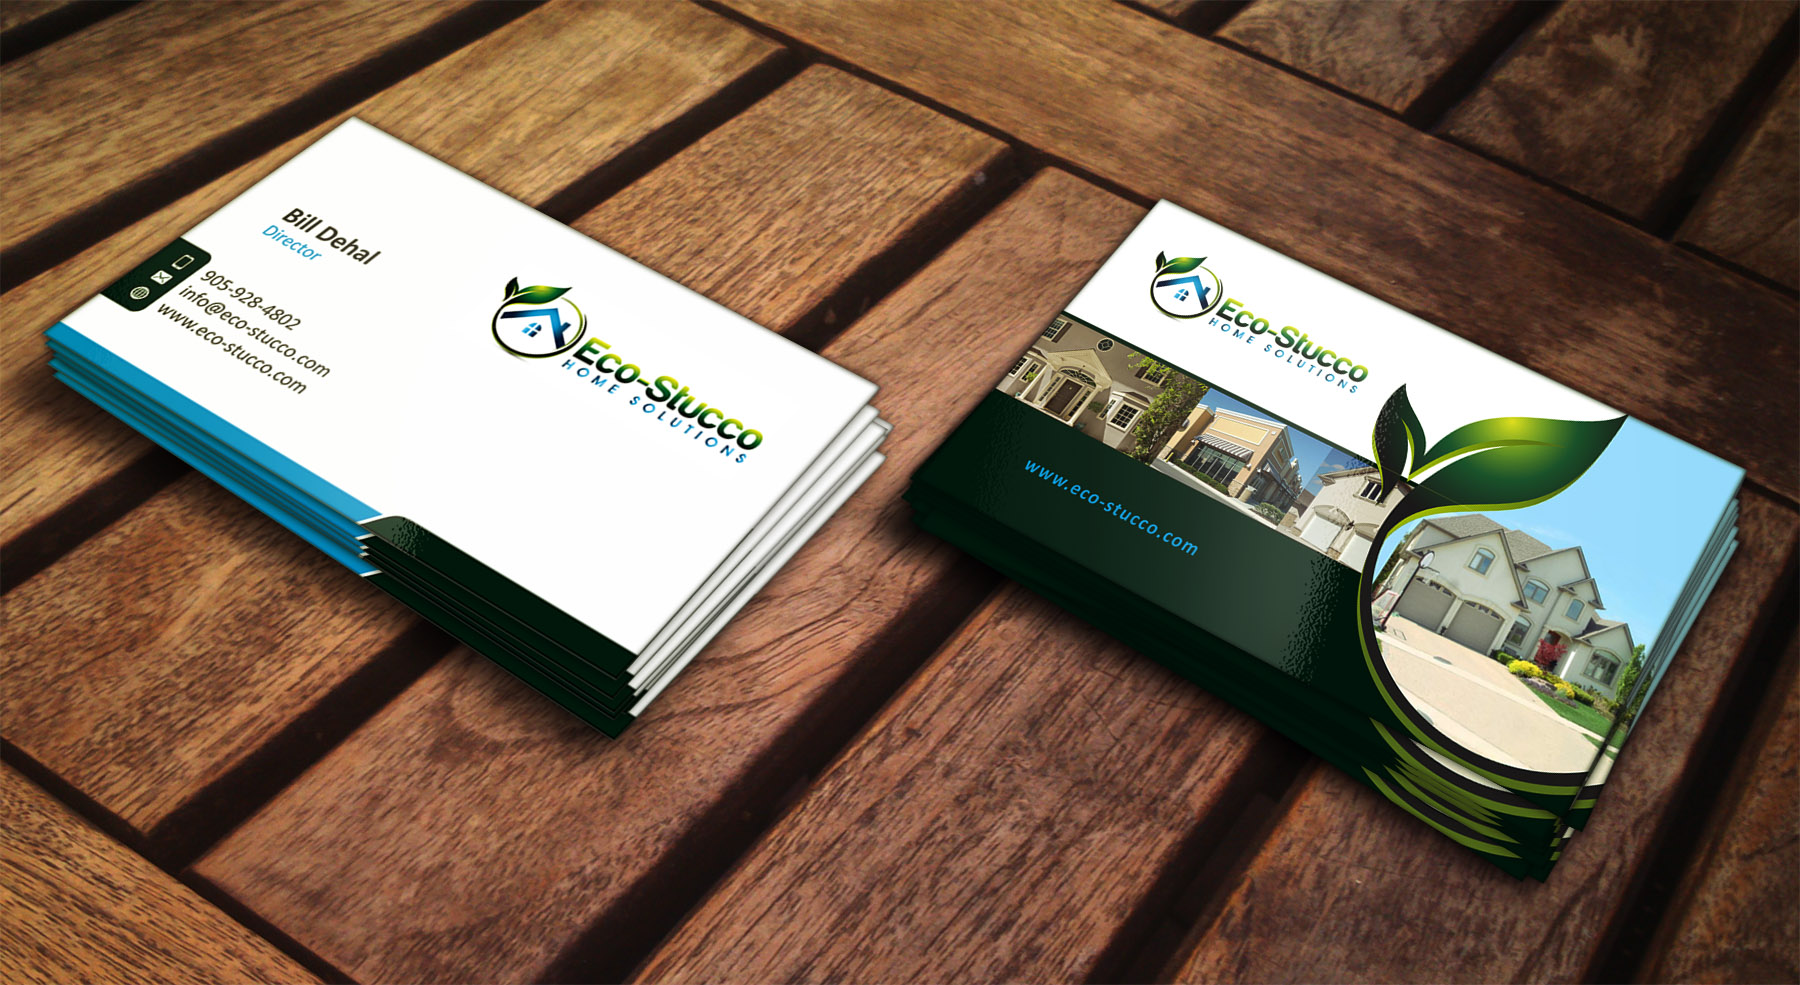 Business Card Design by Muhammad Aslam - Entry No. 46 in the Business Card Design Contest Inspiring Business Card Design for Eco-Stucco Home Solutions.